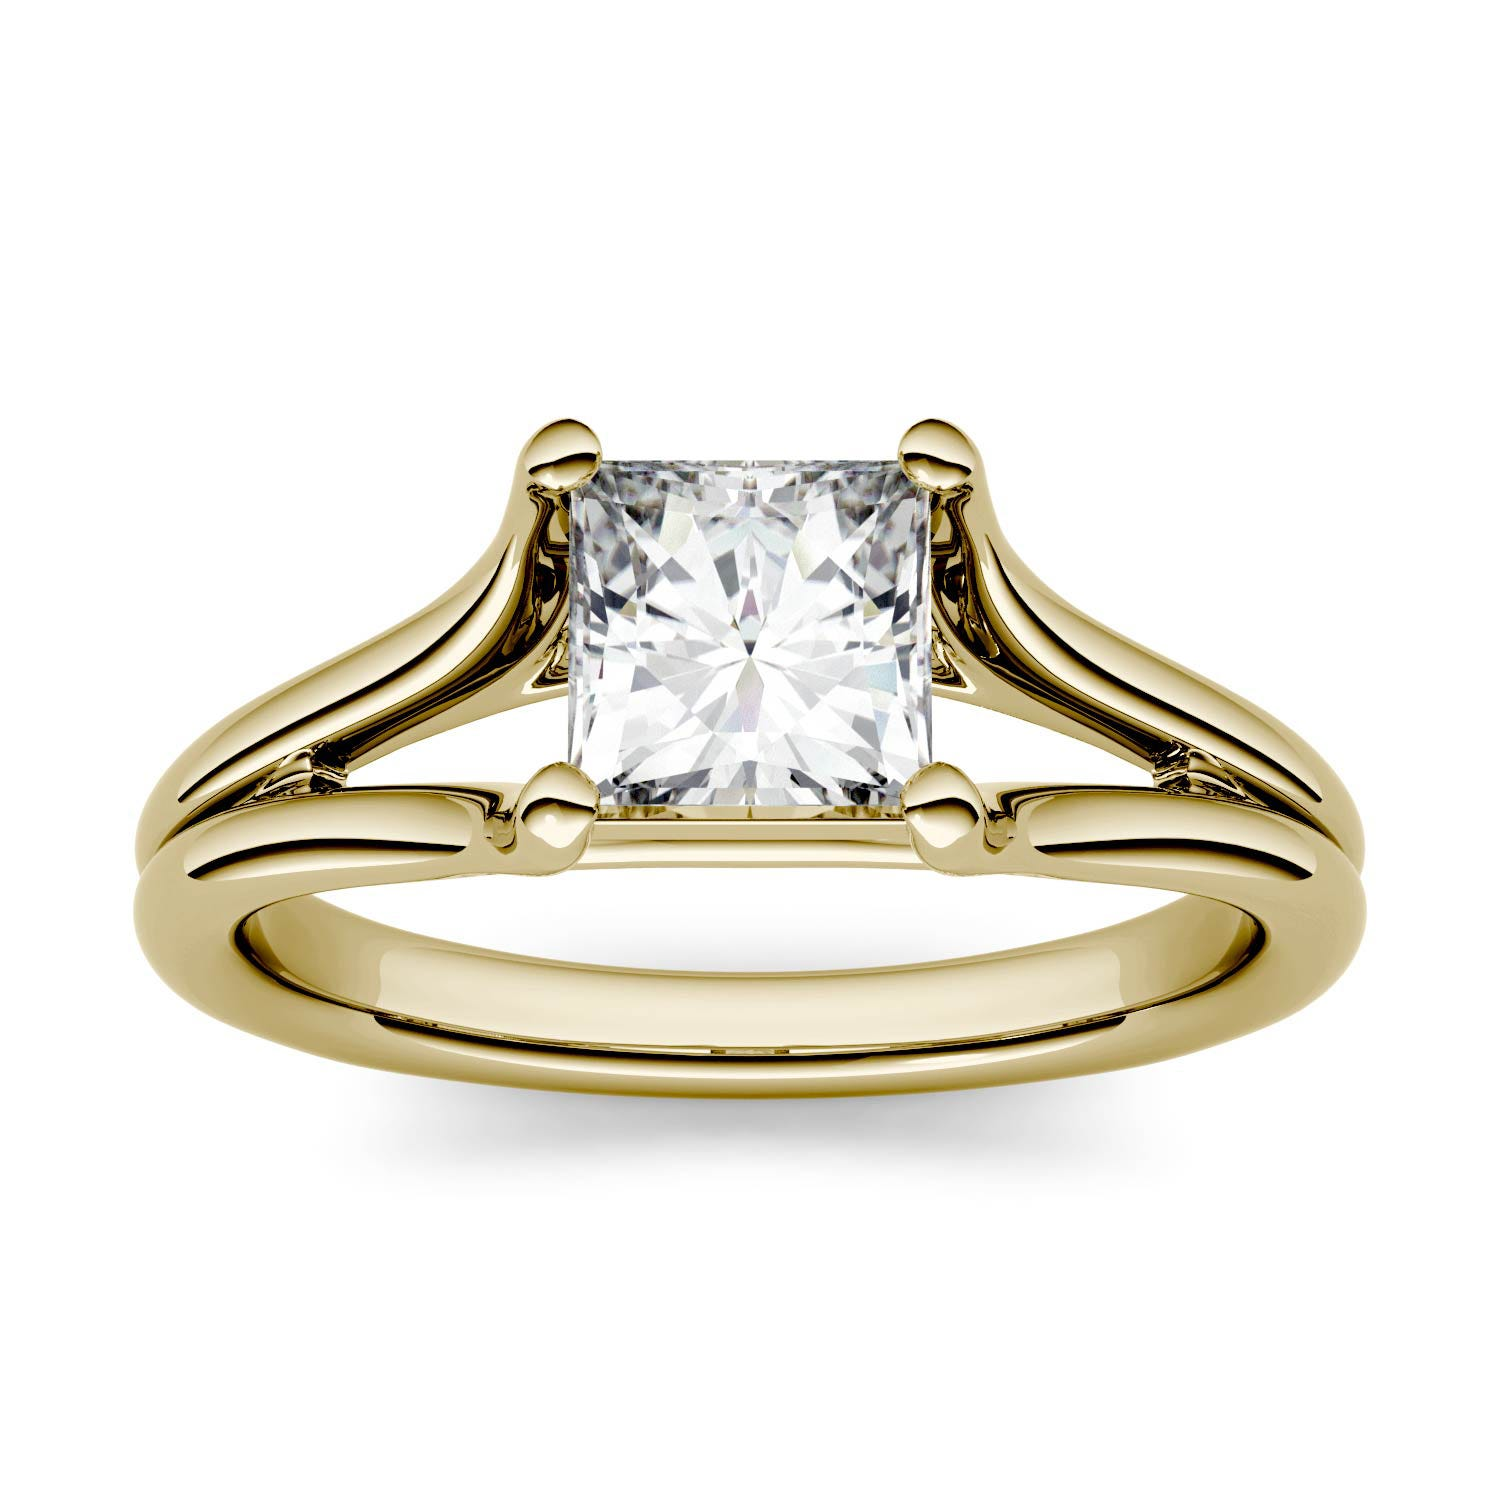 Square 0.91cttw DEW Moissanite Split Shank Solitaire Engagement Ring in 14K Yellow Gold 500124